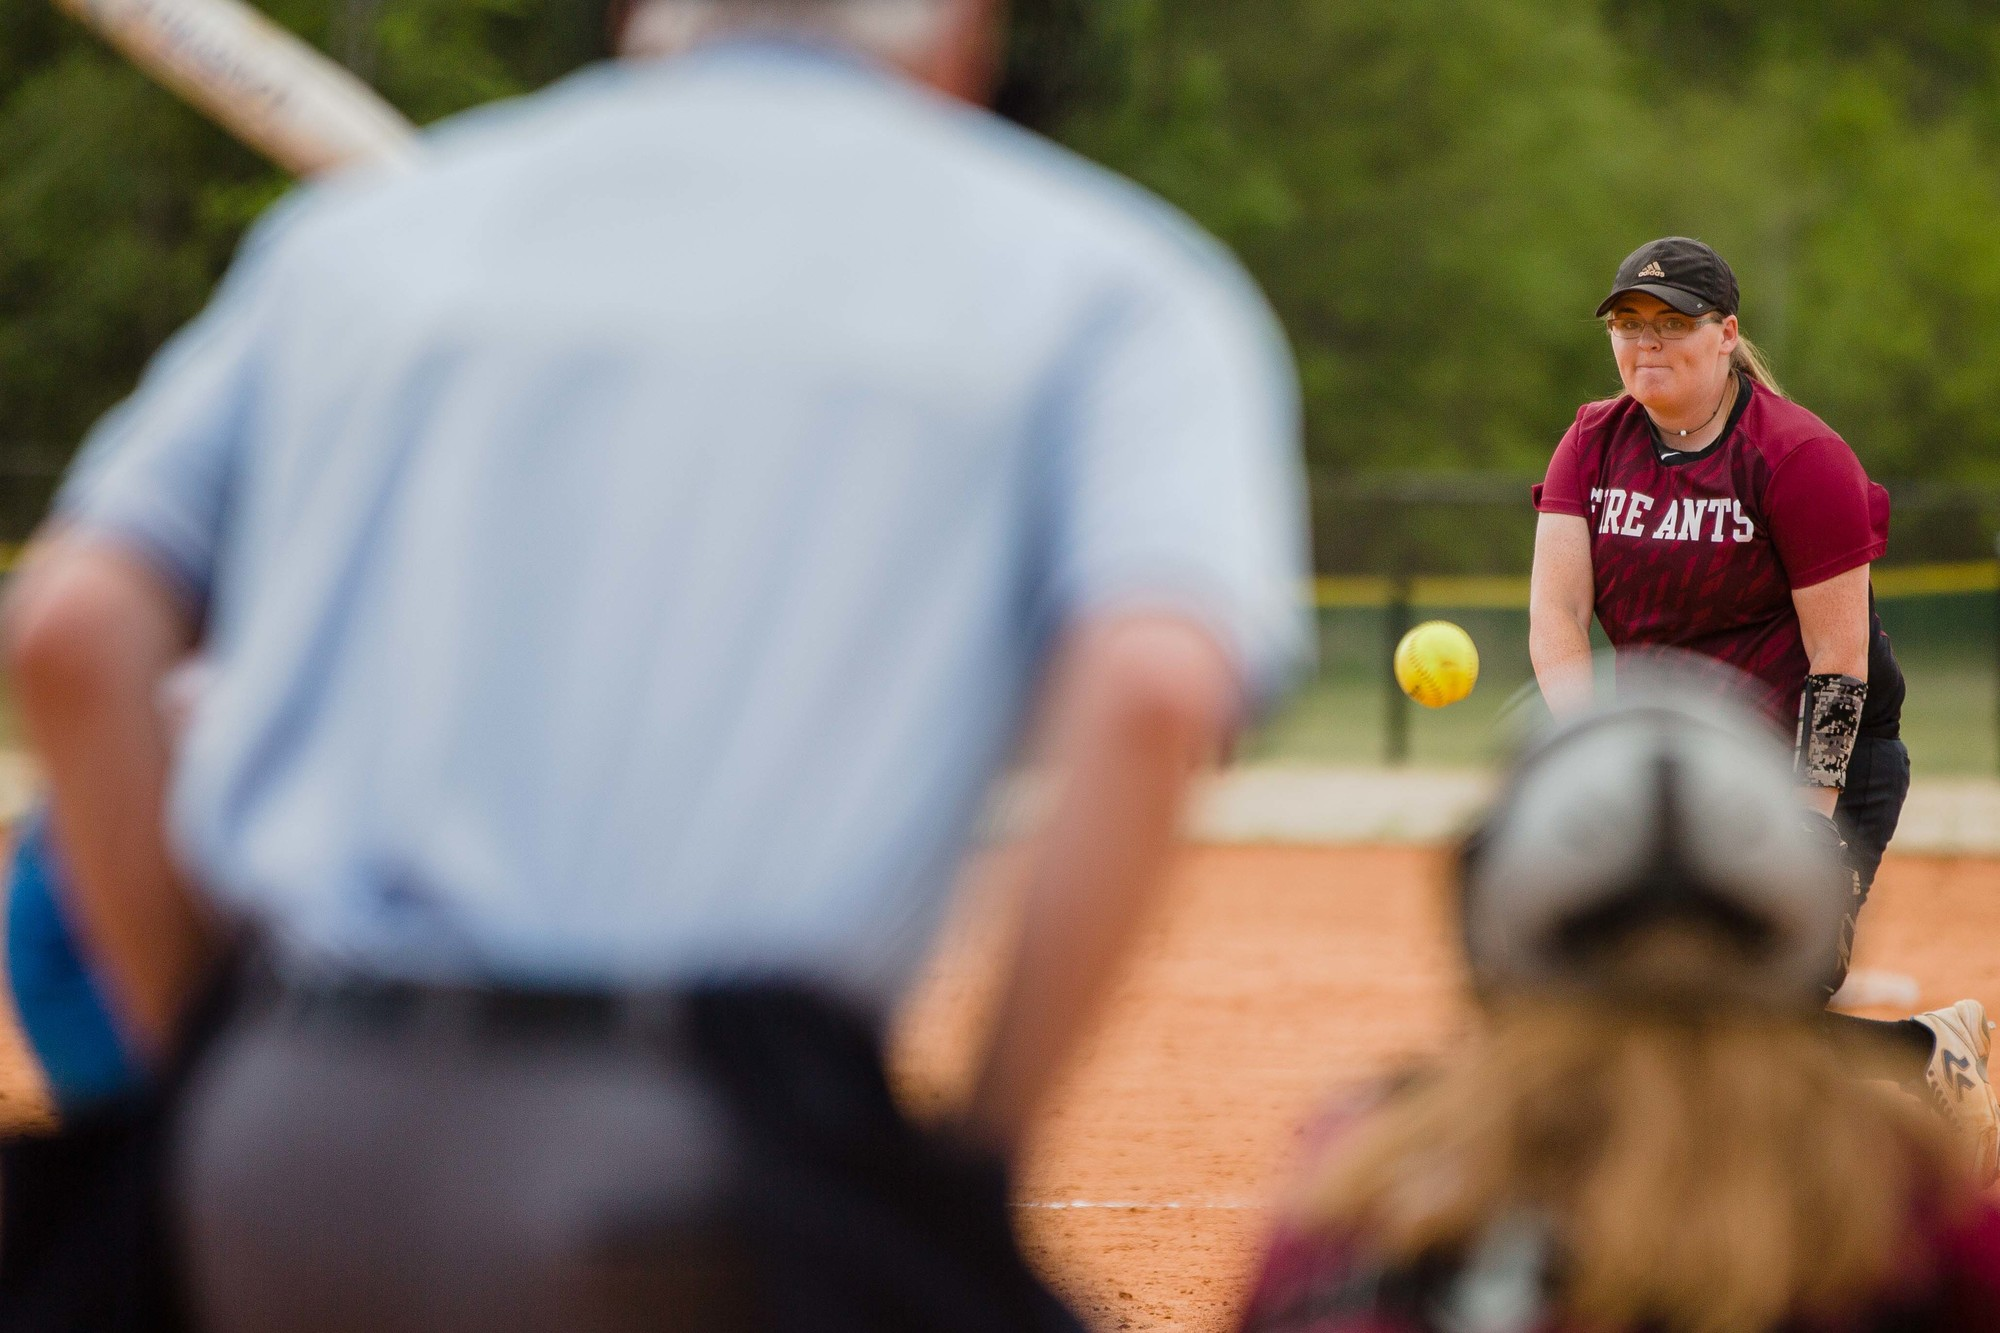 USC Sumter pitcher Meagan Phillips delivers a pitch during the Fire Ants' game against Spartanburg Methodist College on Fridiay at the Patriot Park Sportplex.